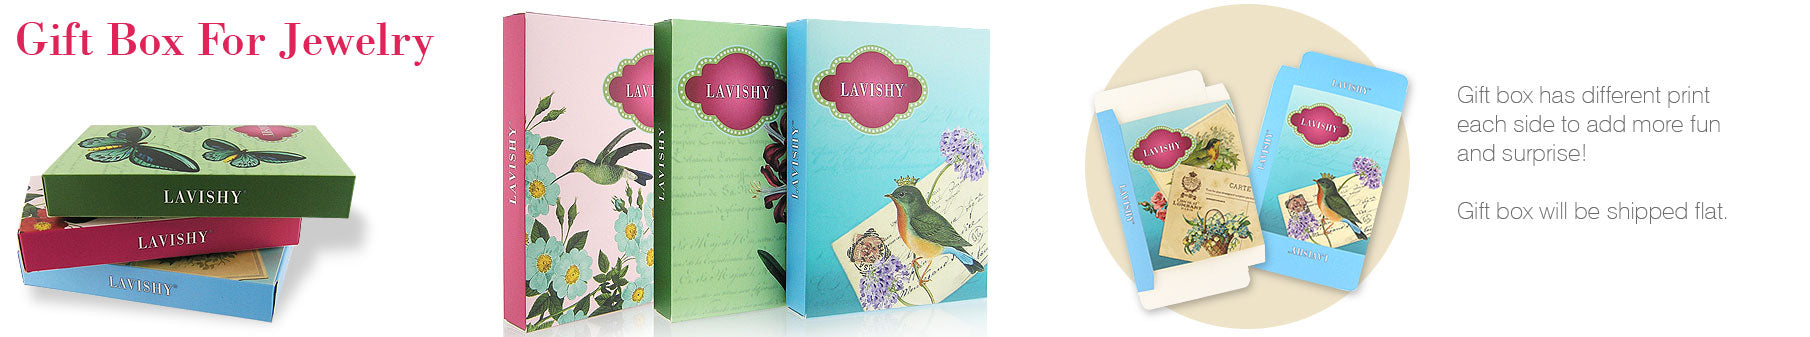 LAVISHY Boutique offers FREE Gift Packaging to make gift giving easier and more fun